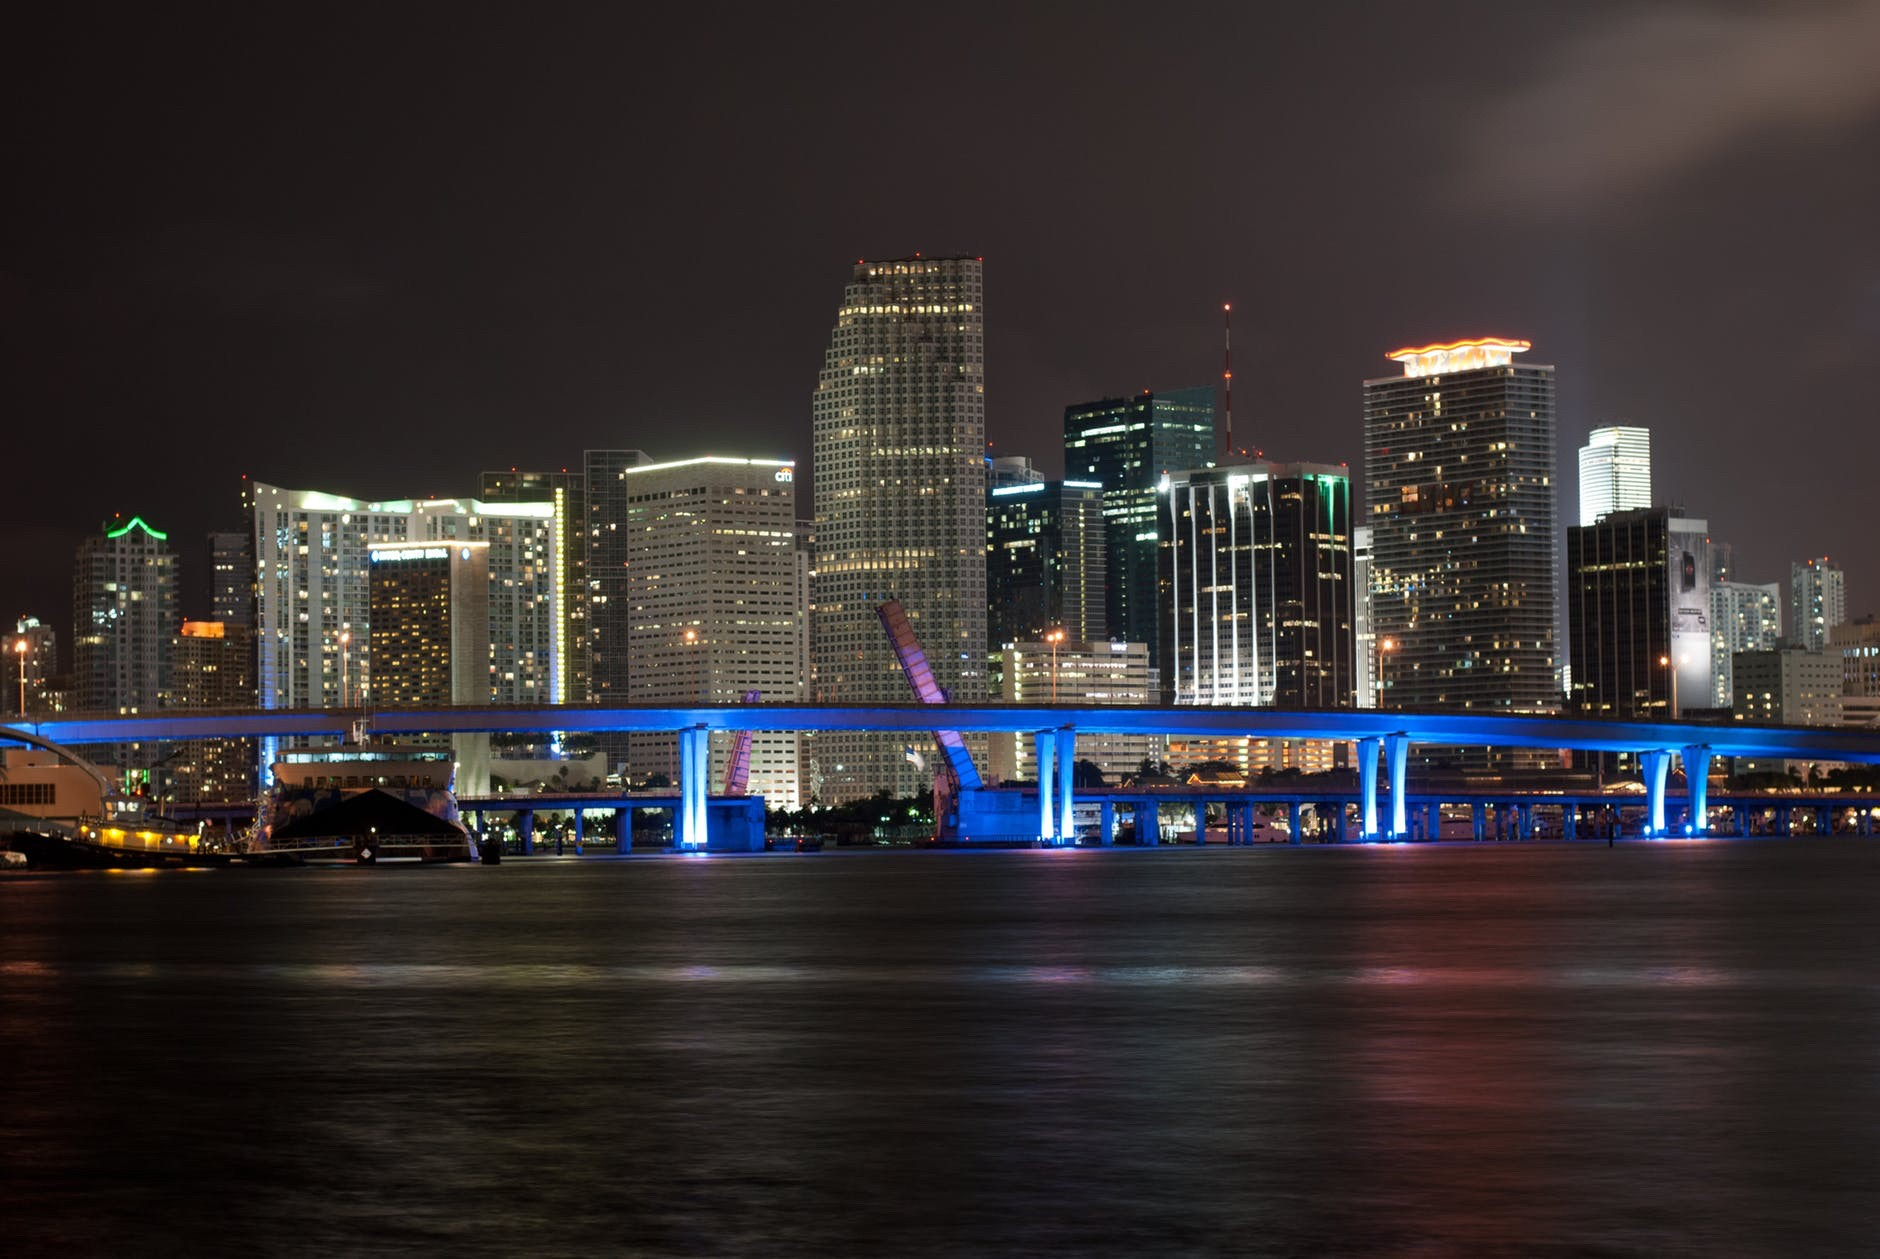 Flight Deal Round Trip From Chicago Area to Miami Area #chicago #miami #extendedweekend